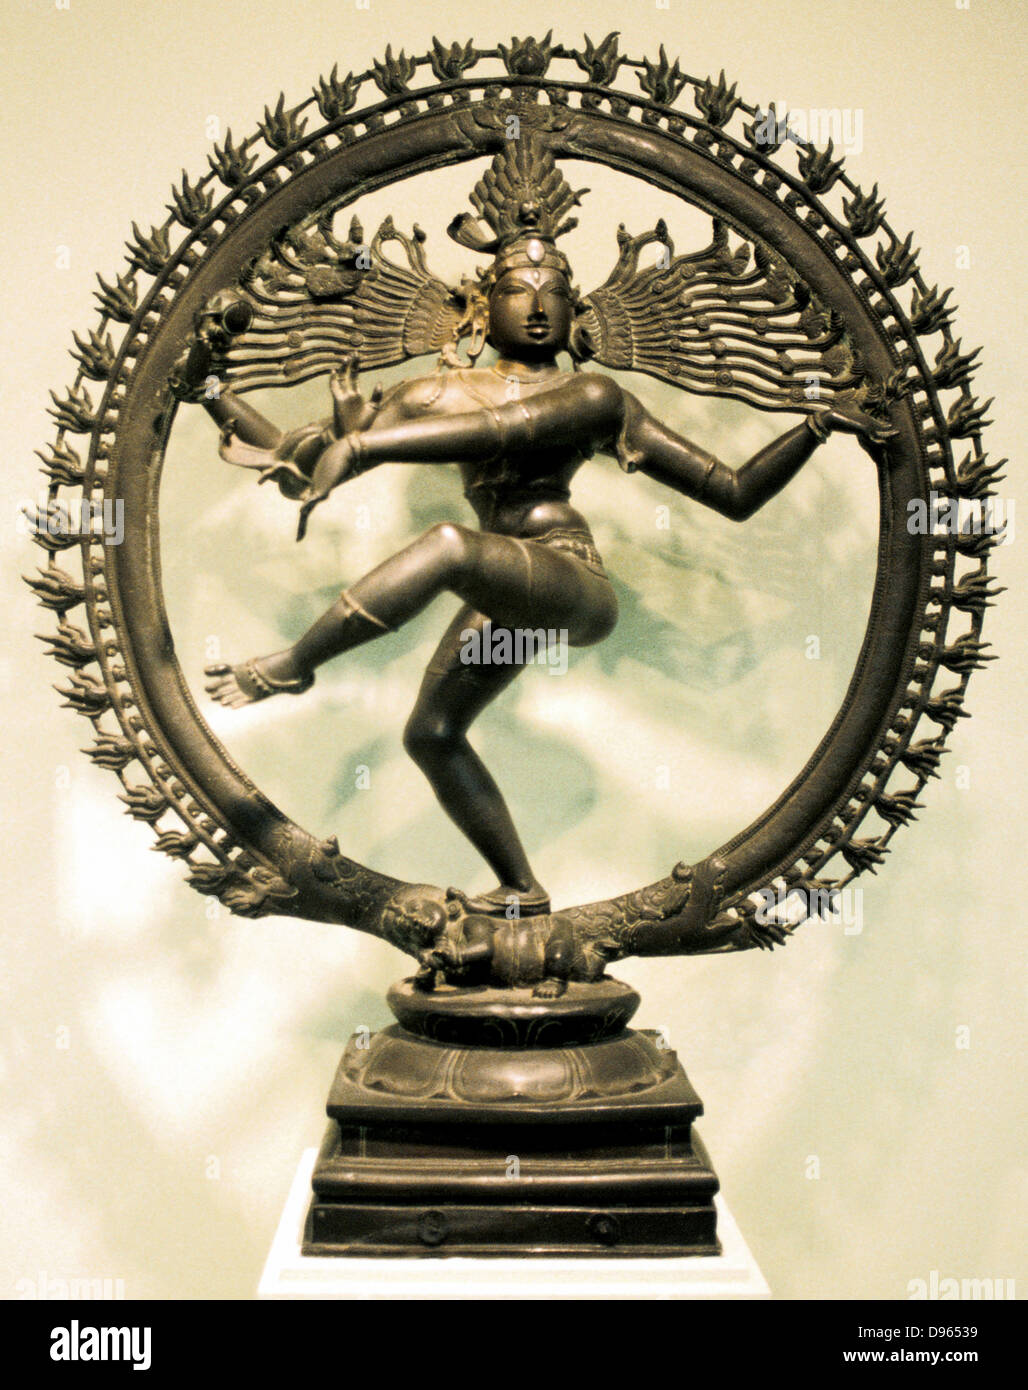 Hindu god Shiva (Siva). 16th century Chloa bronze representation of Shiva in the dance of creation. Indian. - Stock Image